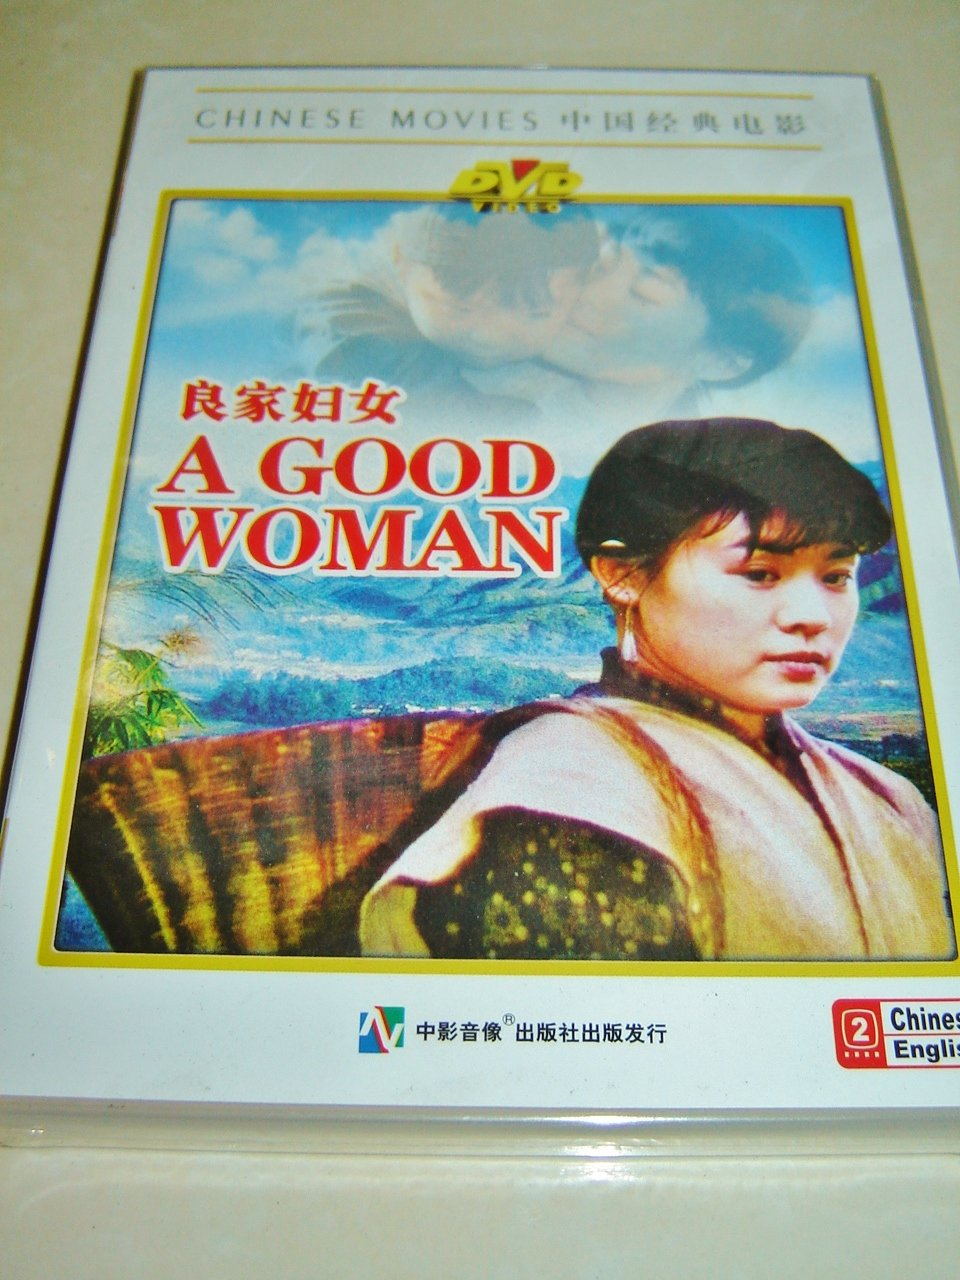 Amazon.com: A Good Woman (Chinese with English and Simplified Chinese subtitles): Zhang Weixin, Ma Lin, Huang Jianzhong: Movies & TV